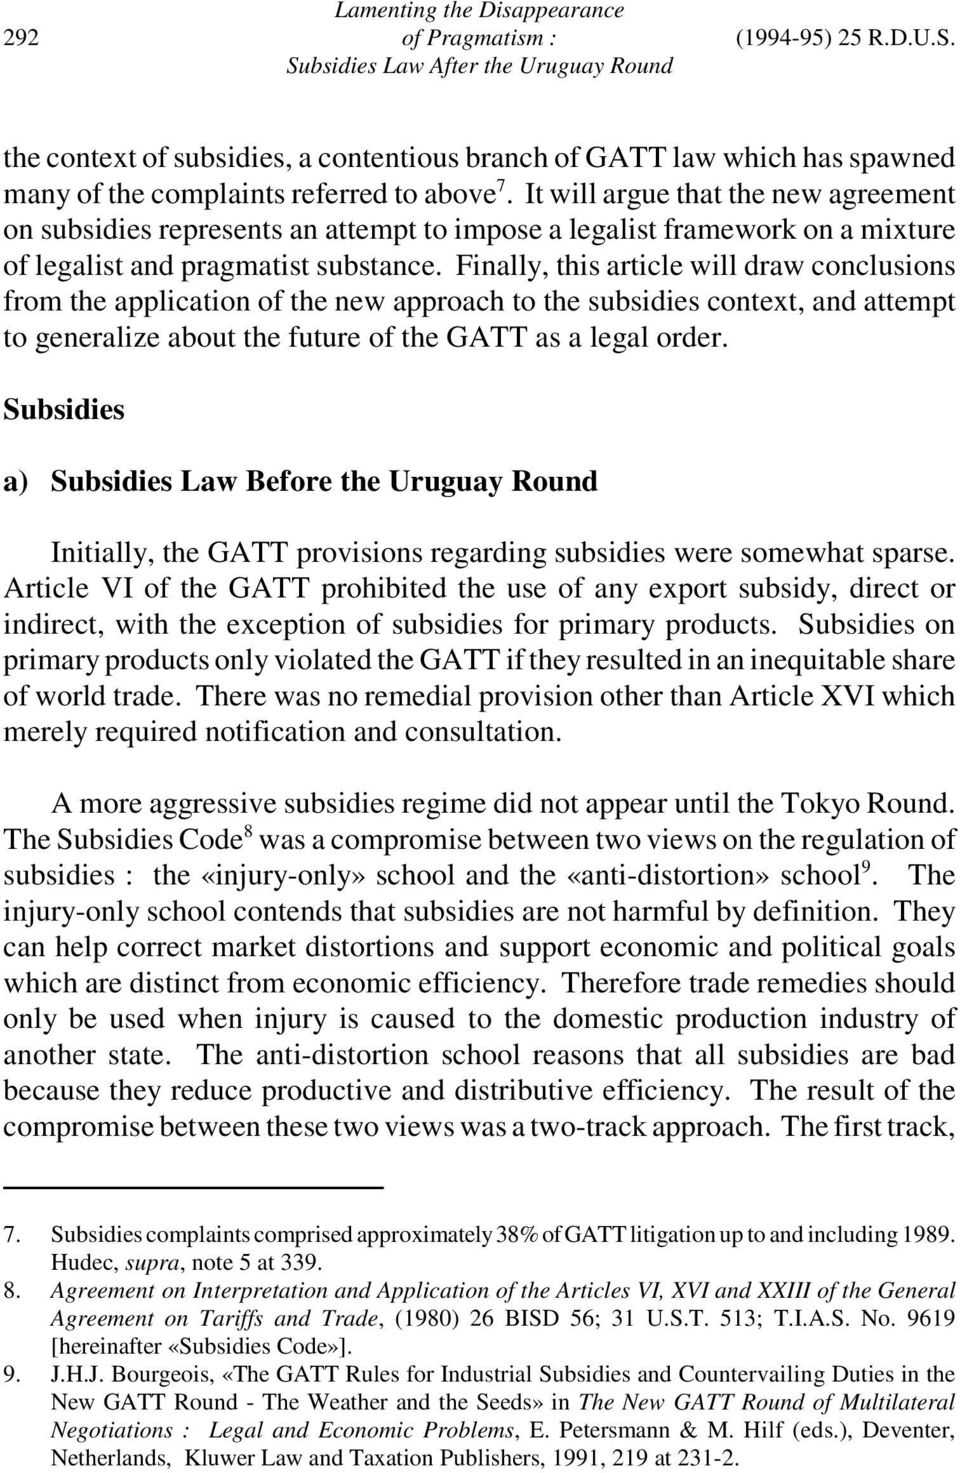 Finally, this article will draw conclusions from the application of the new approach to the subsidies context, and attempt to generalize about the future of the GATT as a legal order.